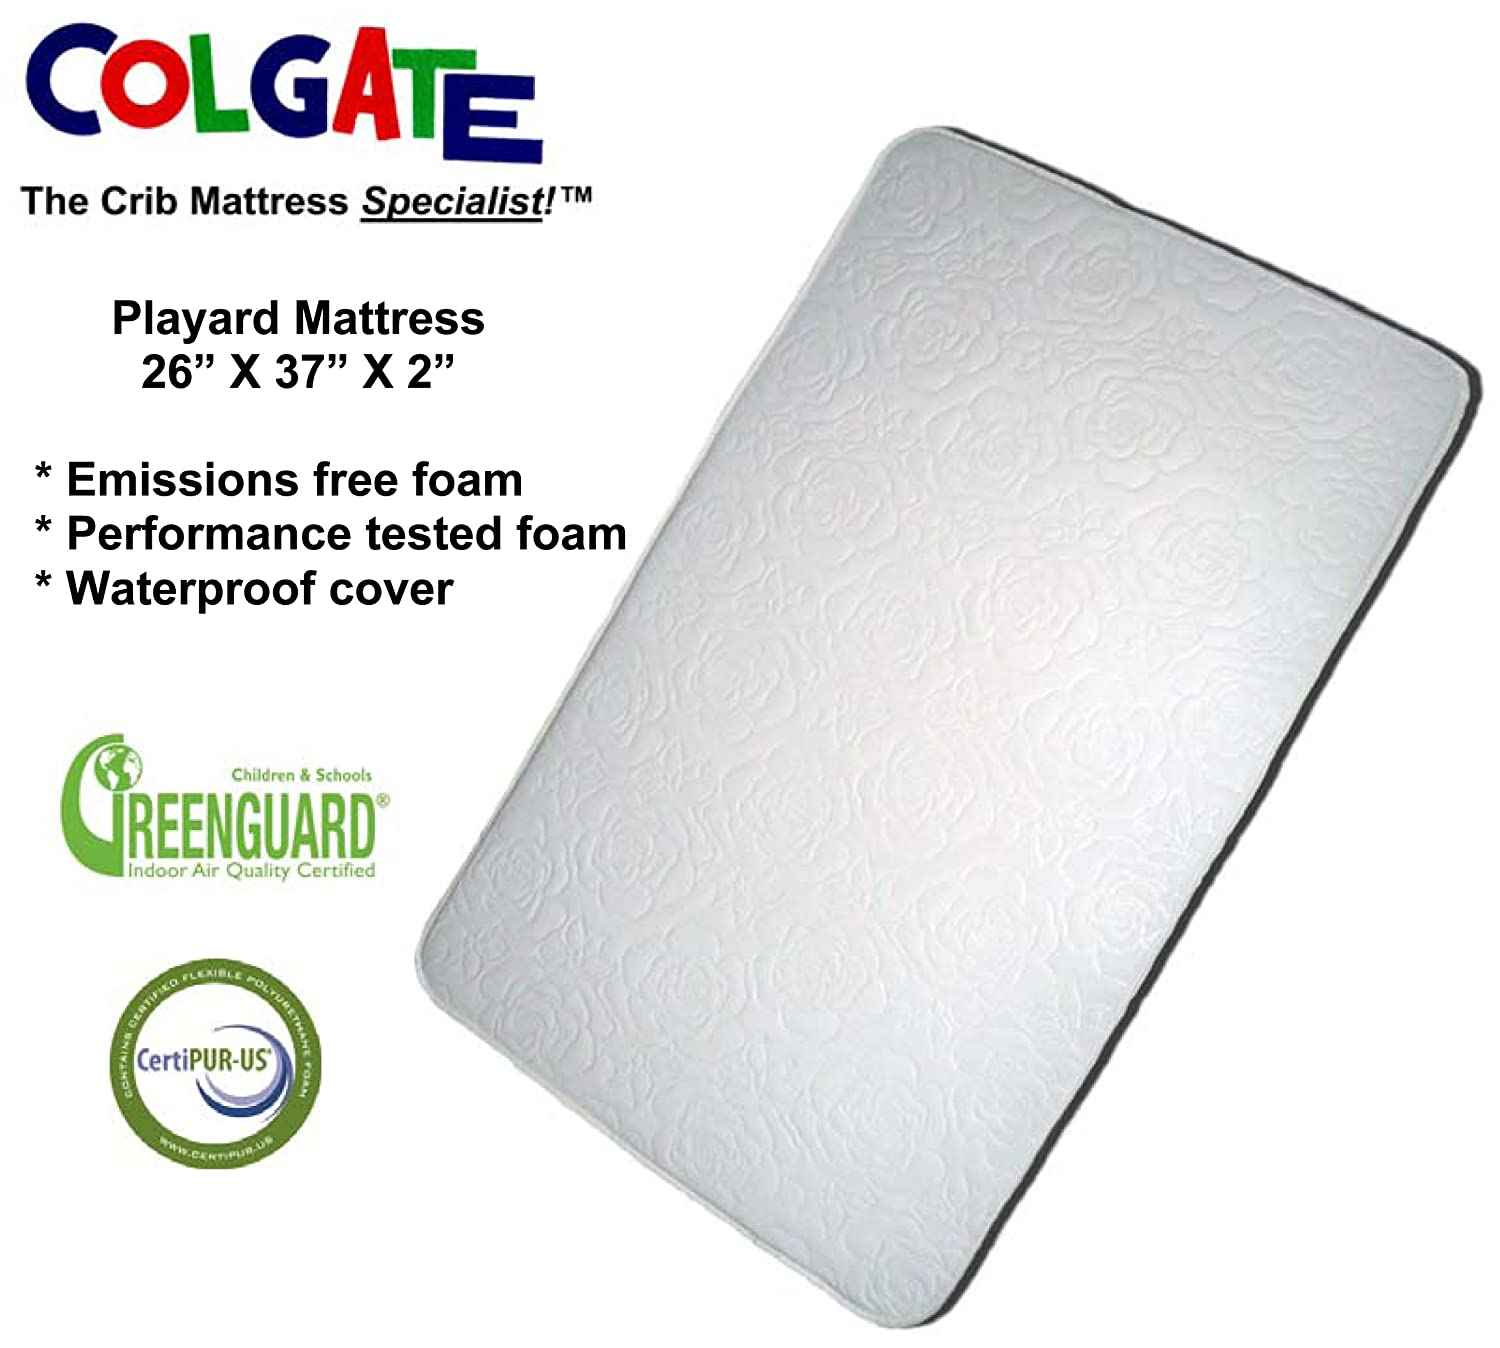 "Amazon.com : Colgate Portable Mattress - 26"" x 37"" x 2"" Rectangular Foam  Pad with Waterproof White Quilted Cover : Colgate Pack N Play Crib Mattress  : Baby"